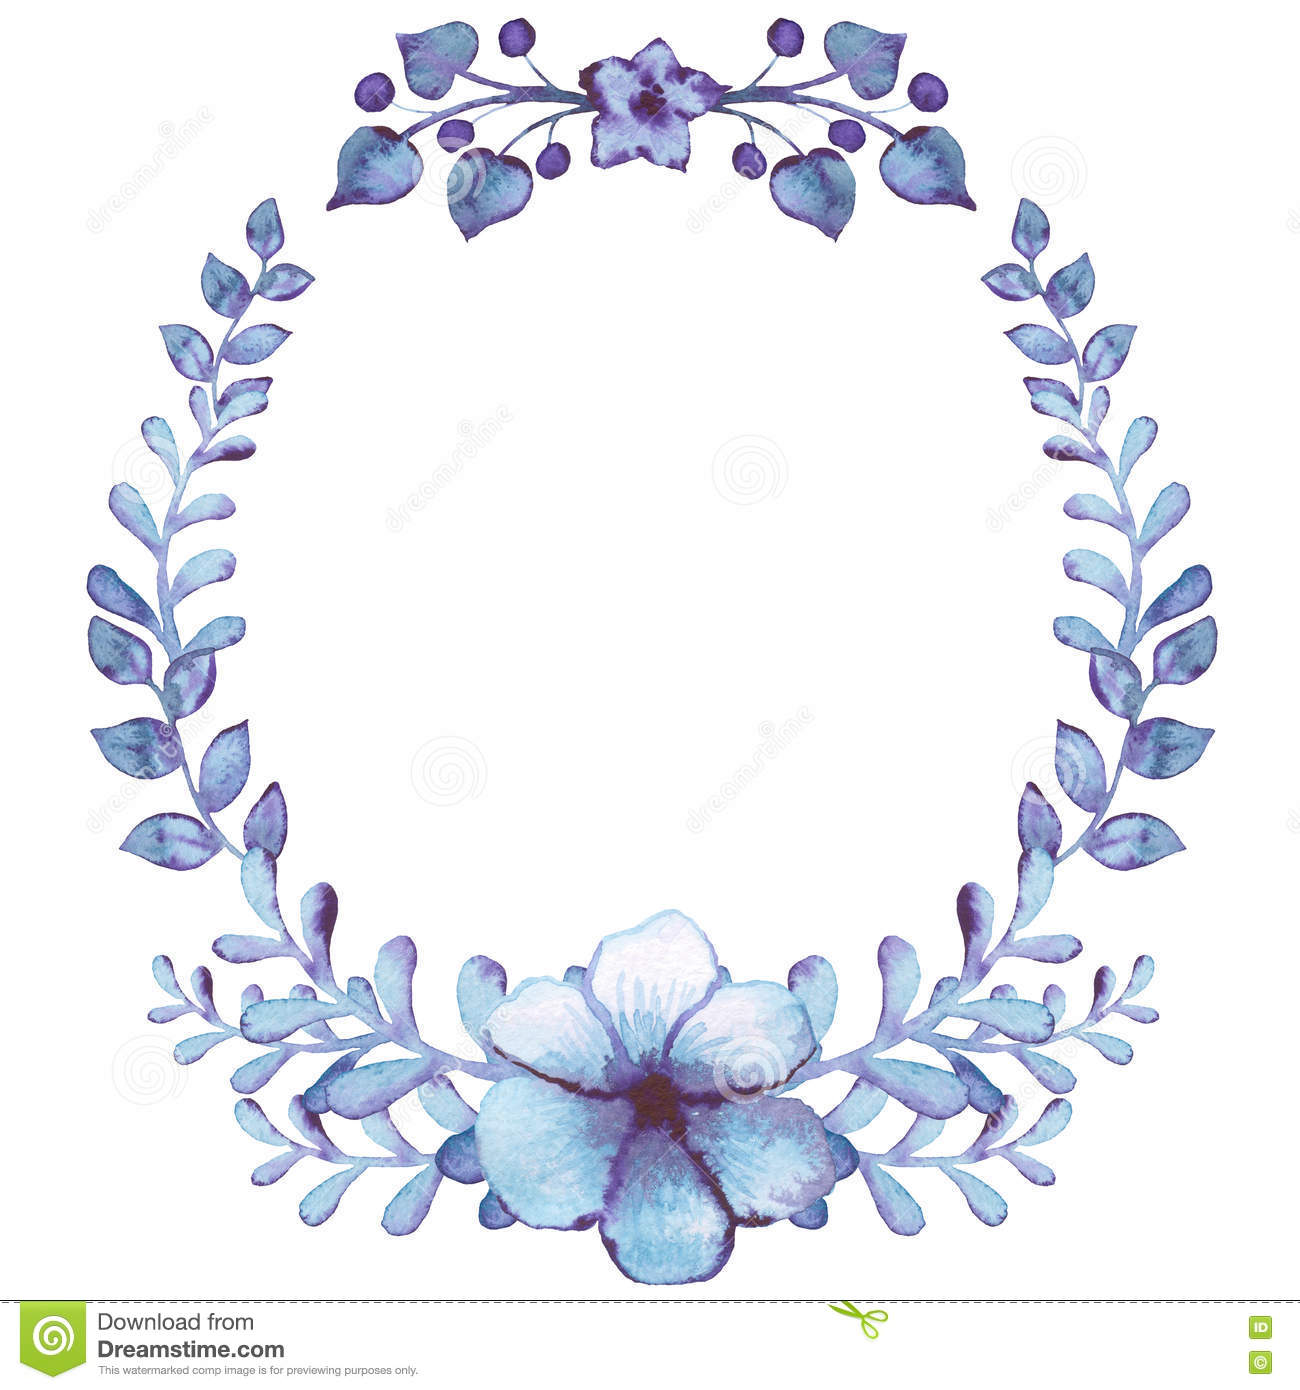 Winter Wreath With Watercolor Light Blue Flowers And Leaves